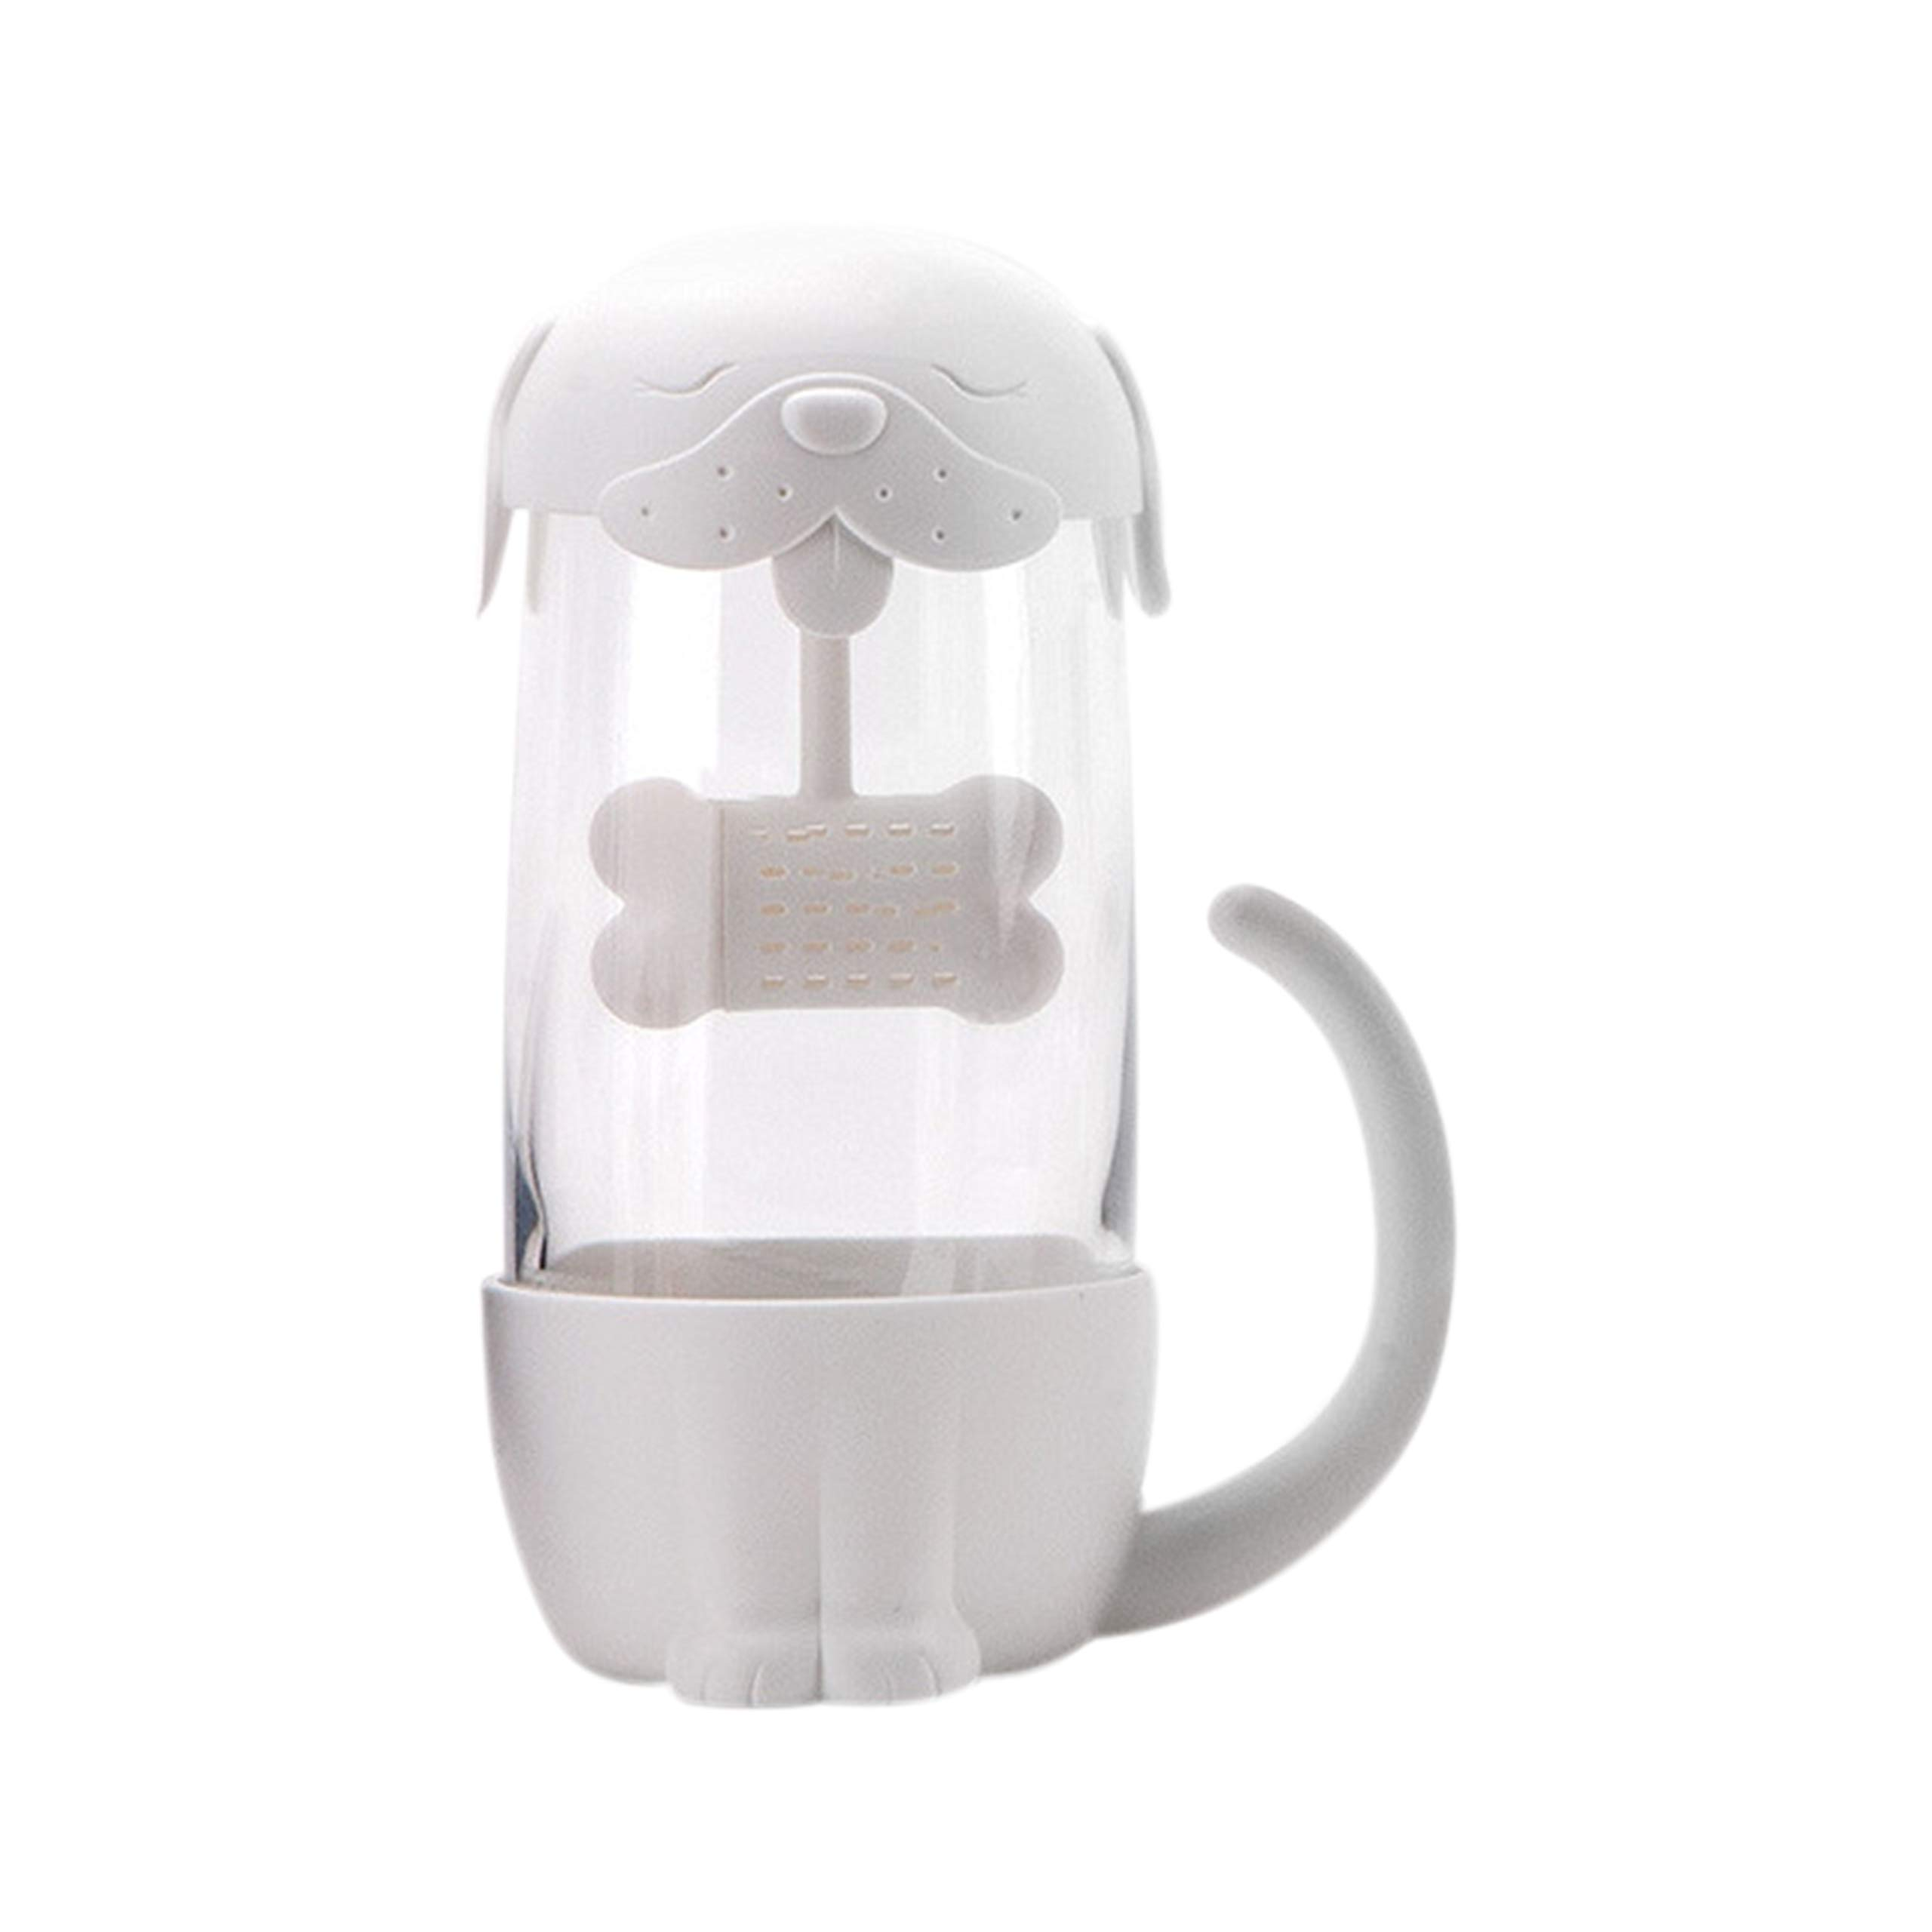 Tea mug with infuser lid cute cat glass tea cups infuser mug teacup cat dog (dog/white) Father's Day Gift